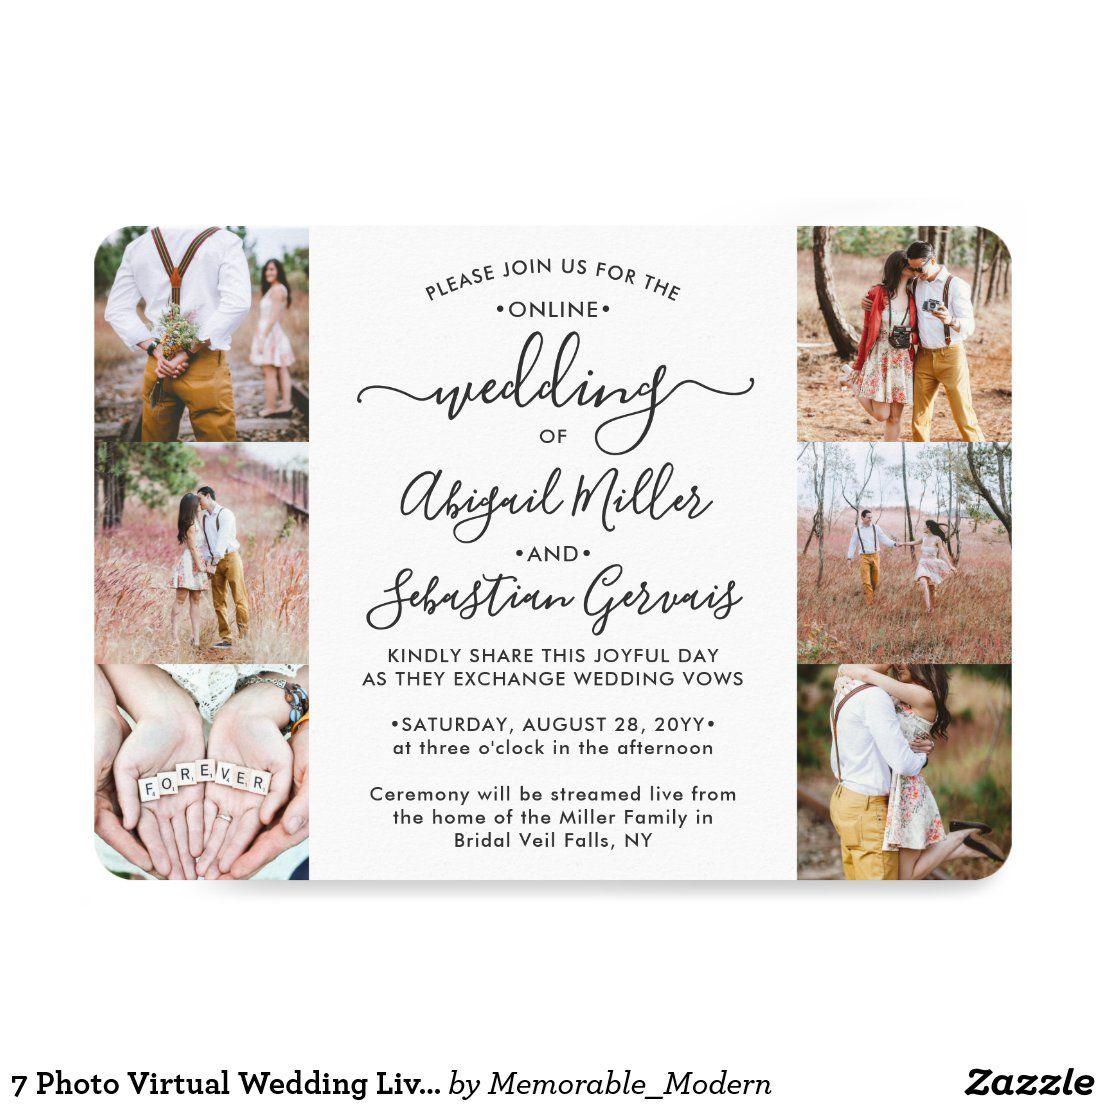 7 Photo Virtual Wedding Livestream Online Ceremony Invitation In 2020 Wedding Invitations With Pictures Photo Wedding Invitations Easy Diy Wedding Invitations